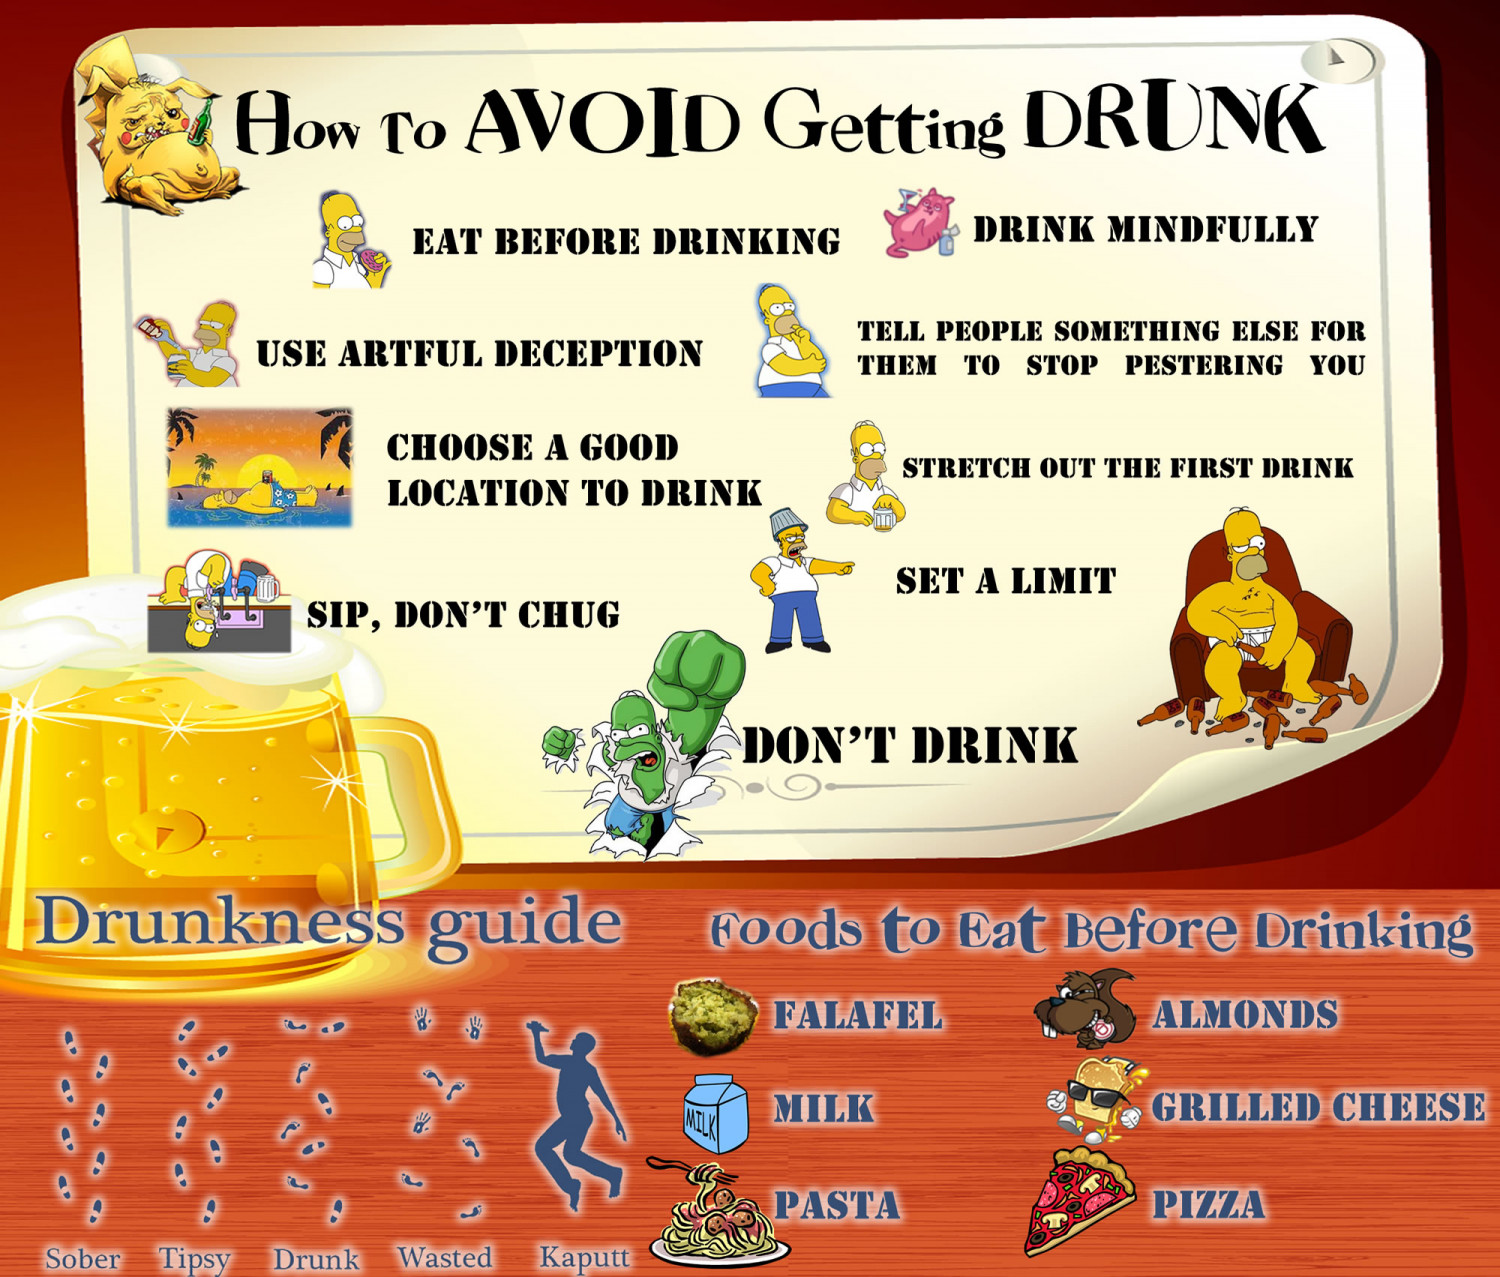 How to Avoid Getting Drunk Infographic